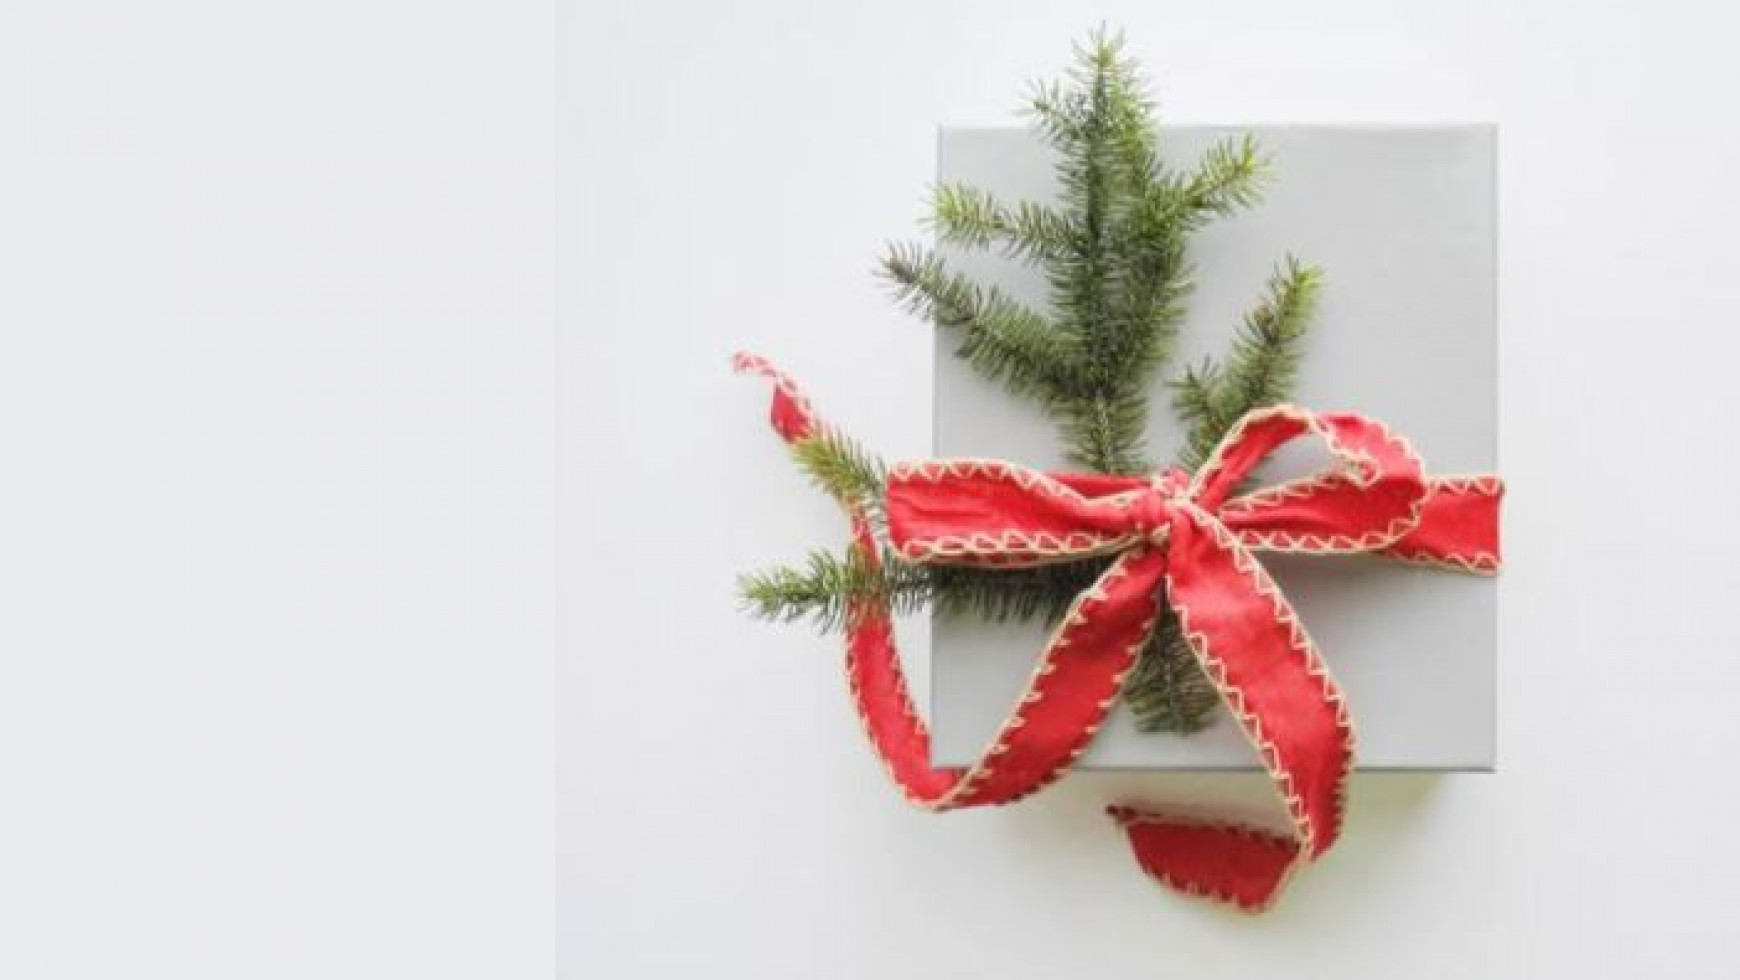 The Gifts of Christmas: Hope